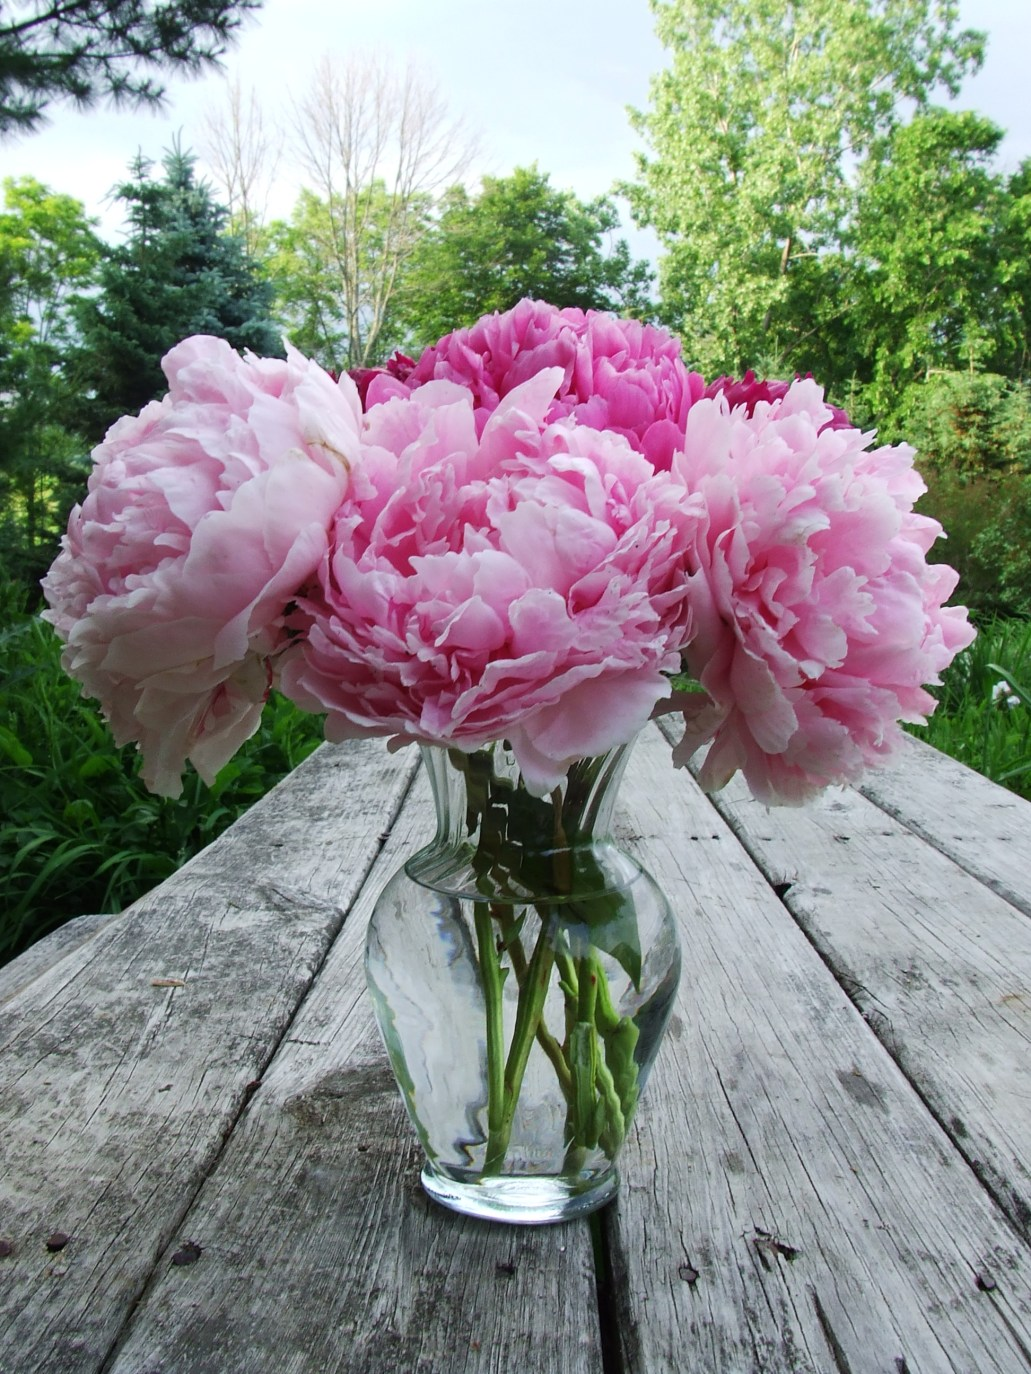 Light_Medium_PInk_Peonies_Vase